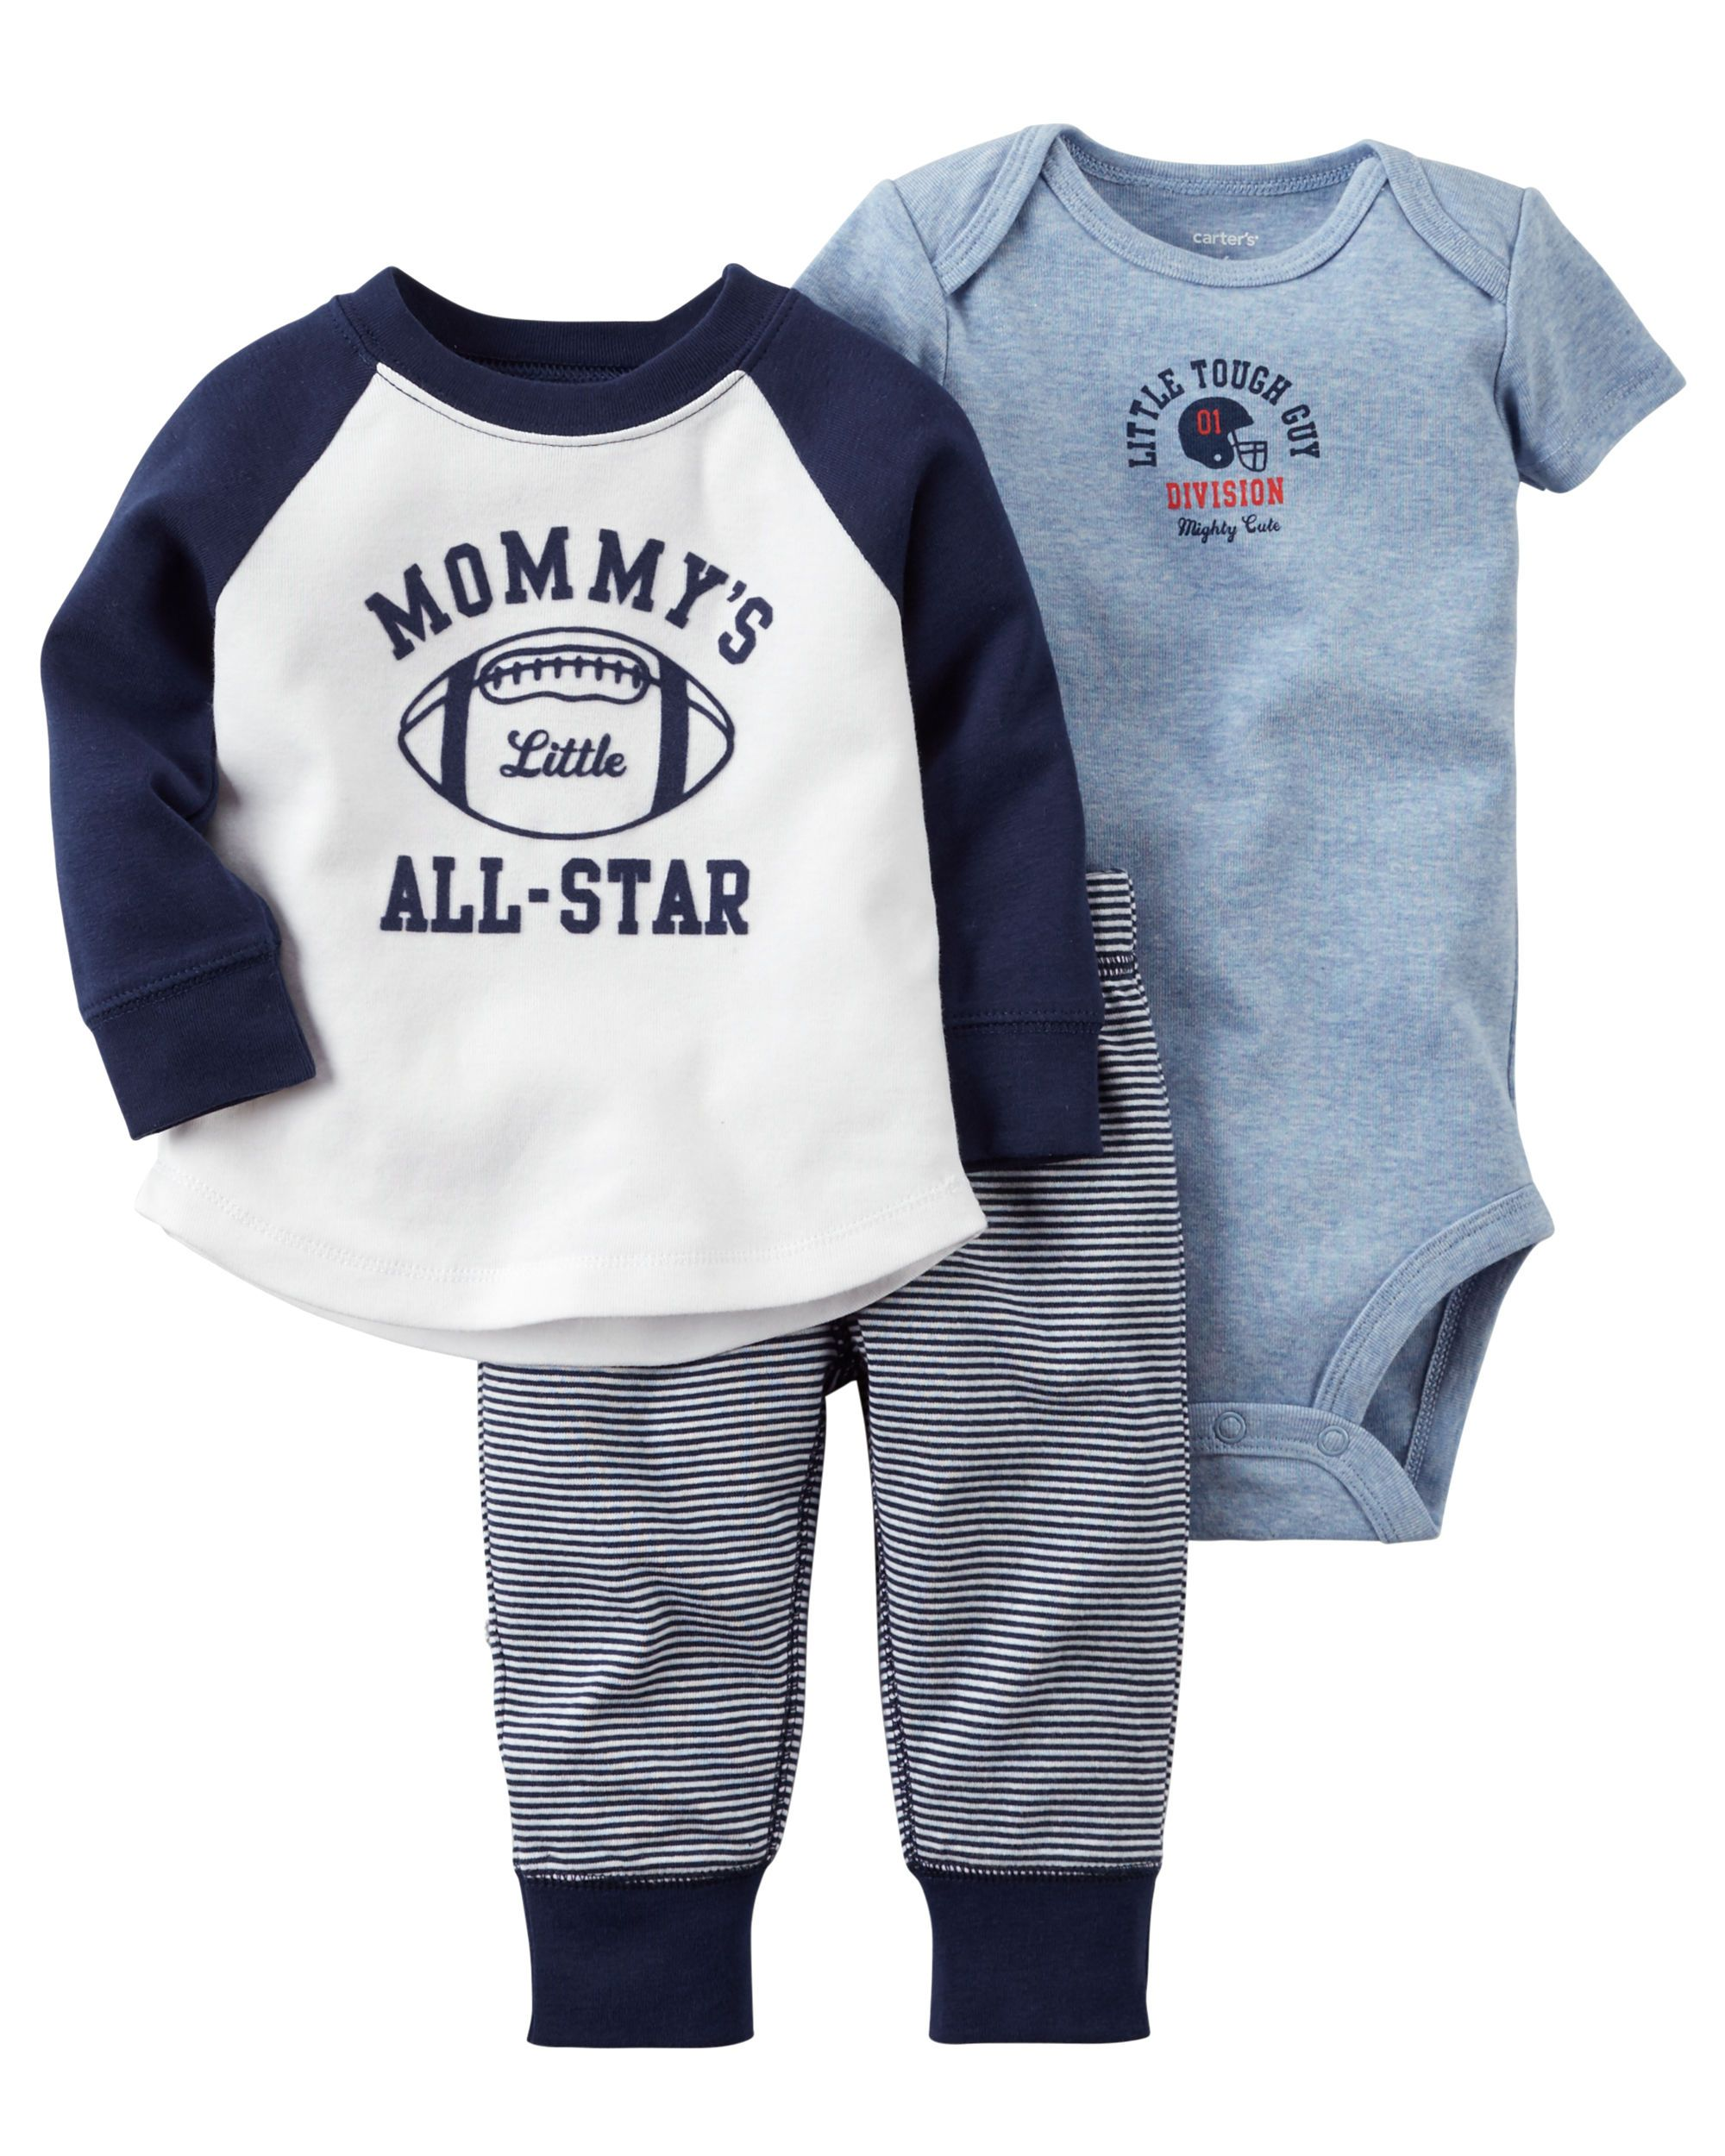 3d862ef77 Featuring a short-sleeve bodysuit and a super cute raglan tee, this  babysoft cotton set lets him mix and match with essential pants. Easy as 1,  2, 3!